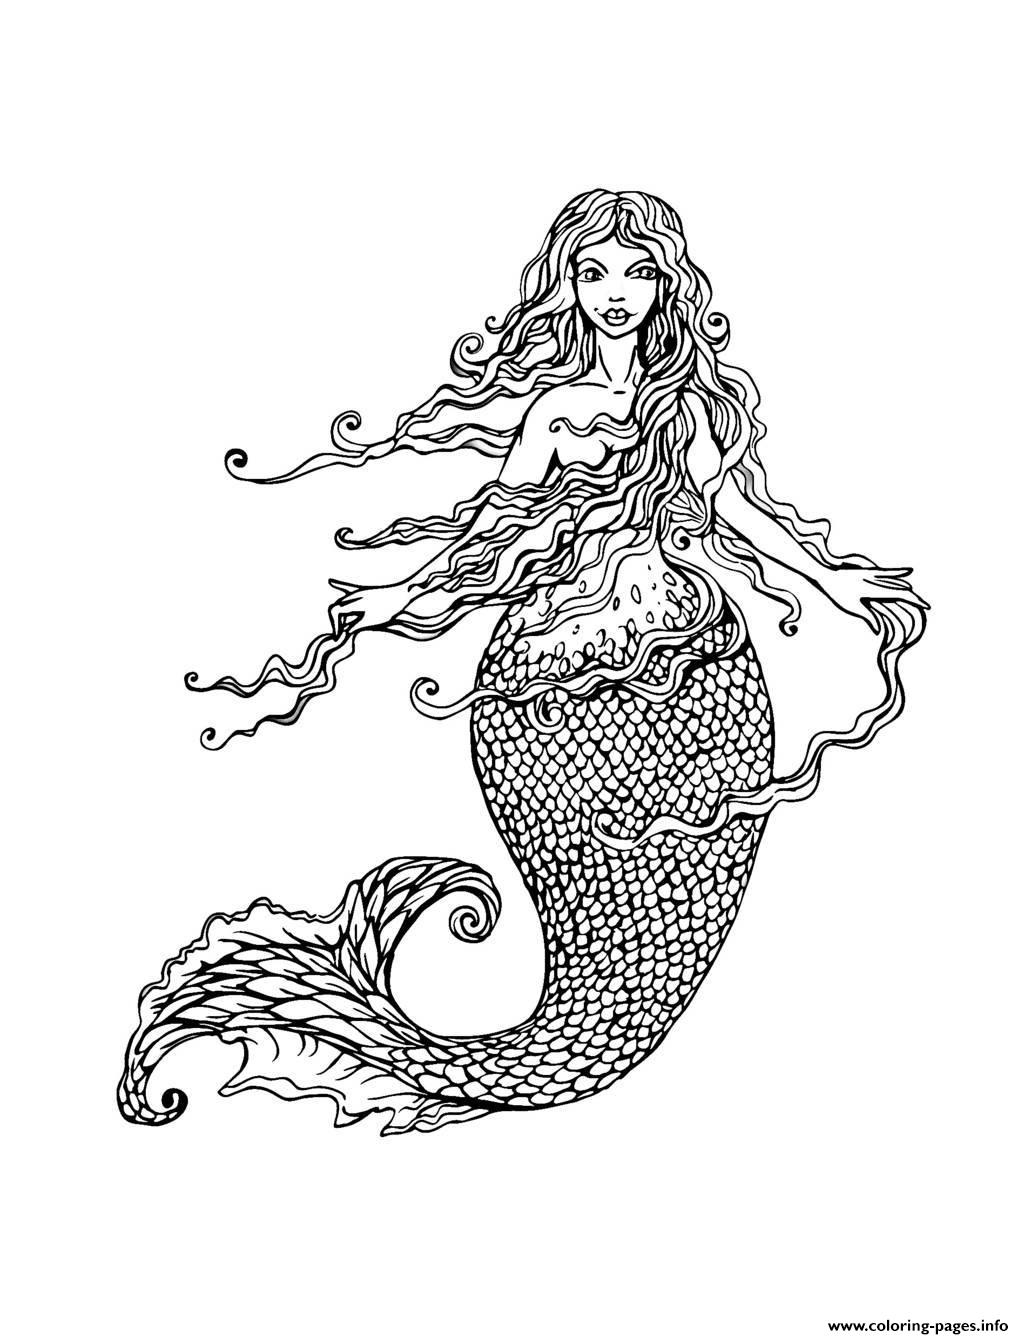 Adult Mermaid With Long Hair By Lian Coloring Pages Printable